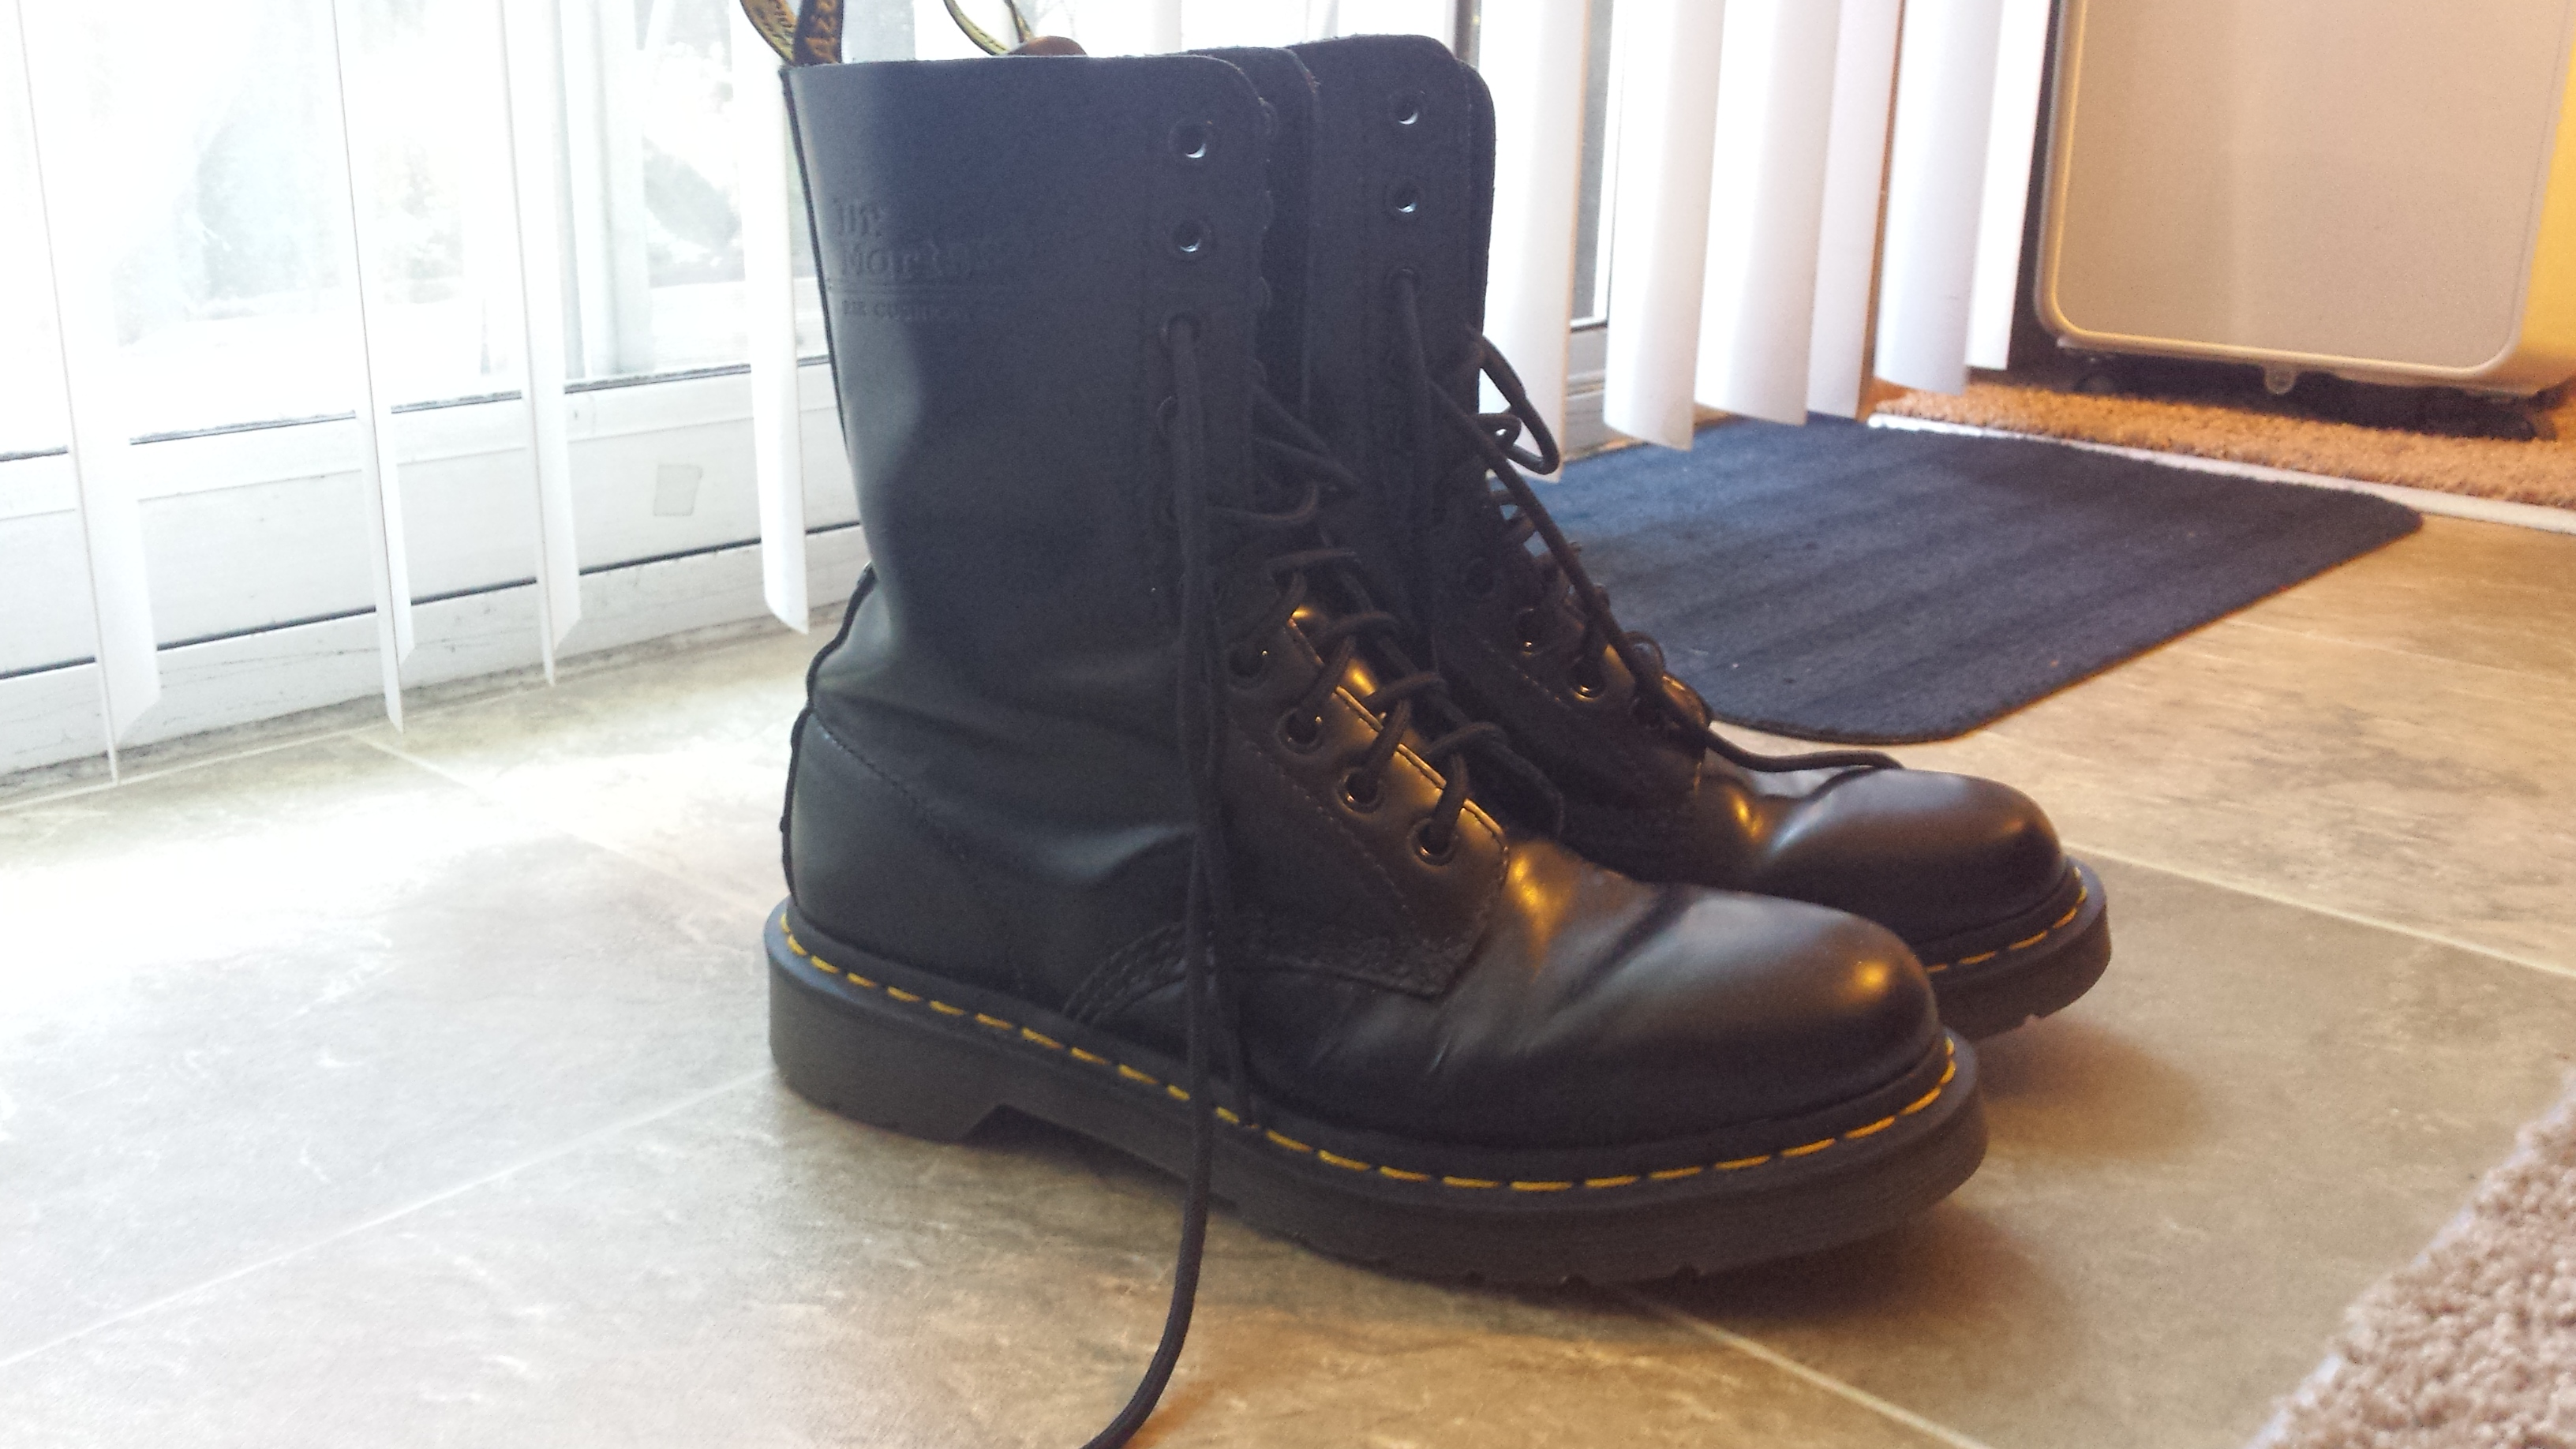 dr martens 1490 size 7 10 eye black leather boots. Black Bedroom Furniture Sets. Home Design Ideas